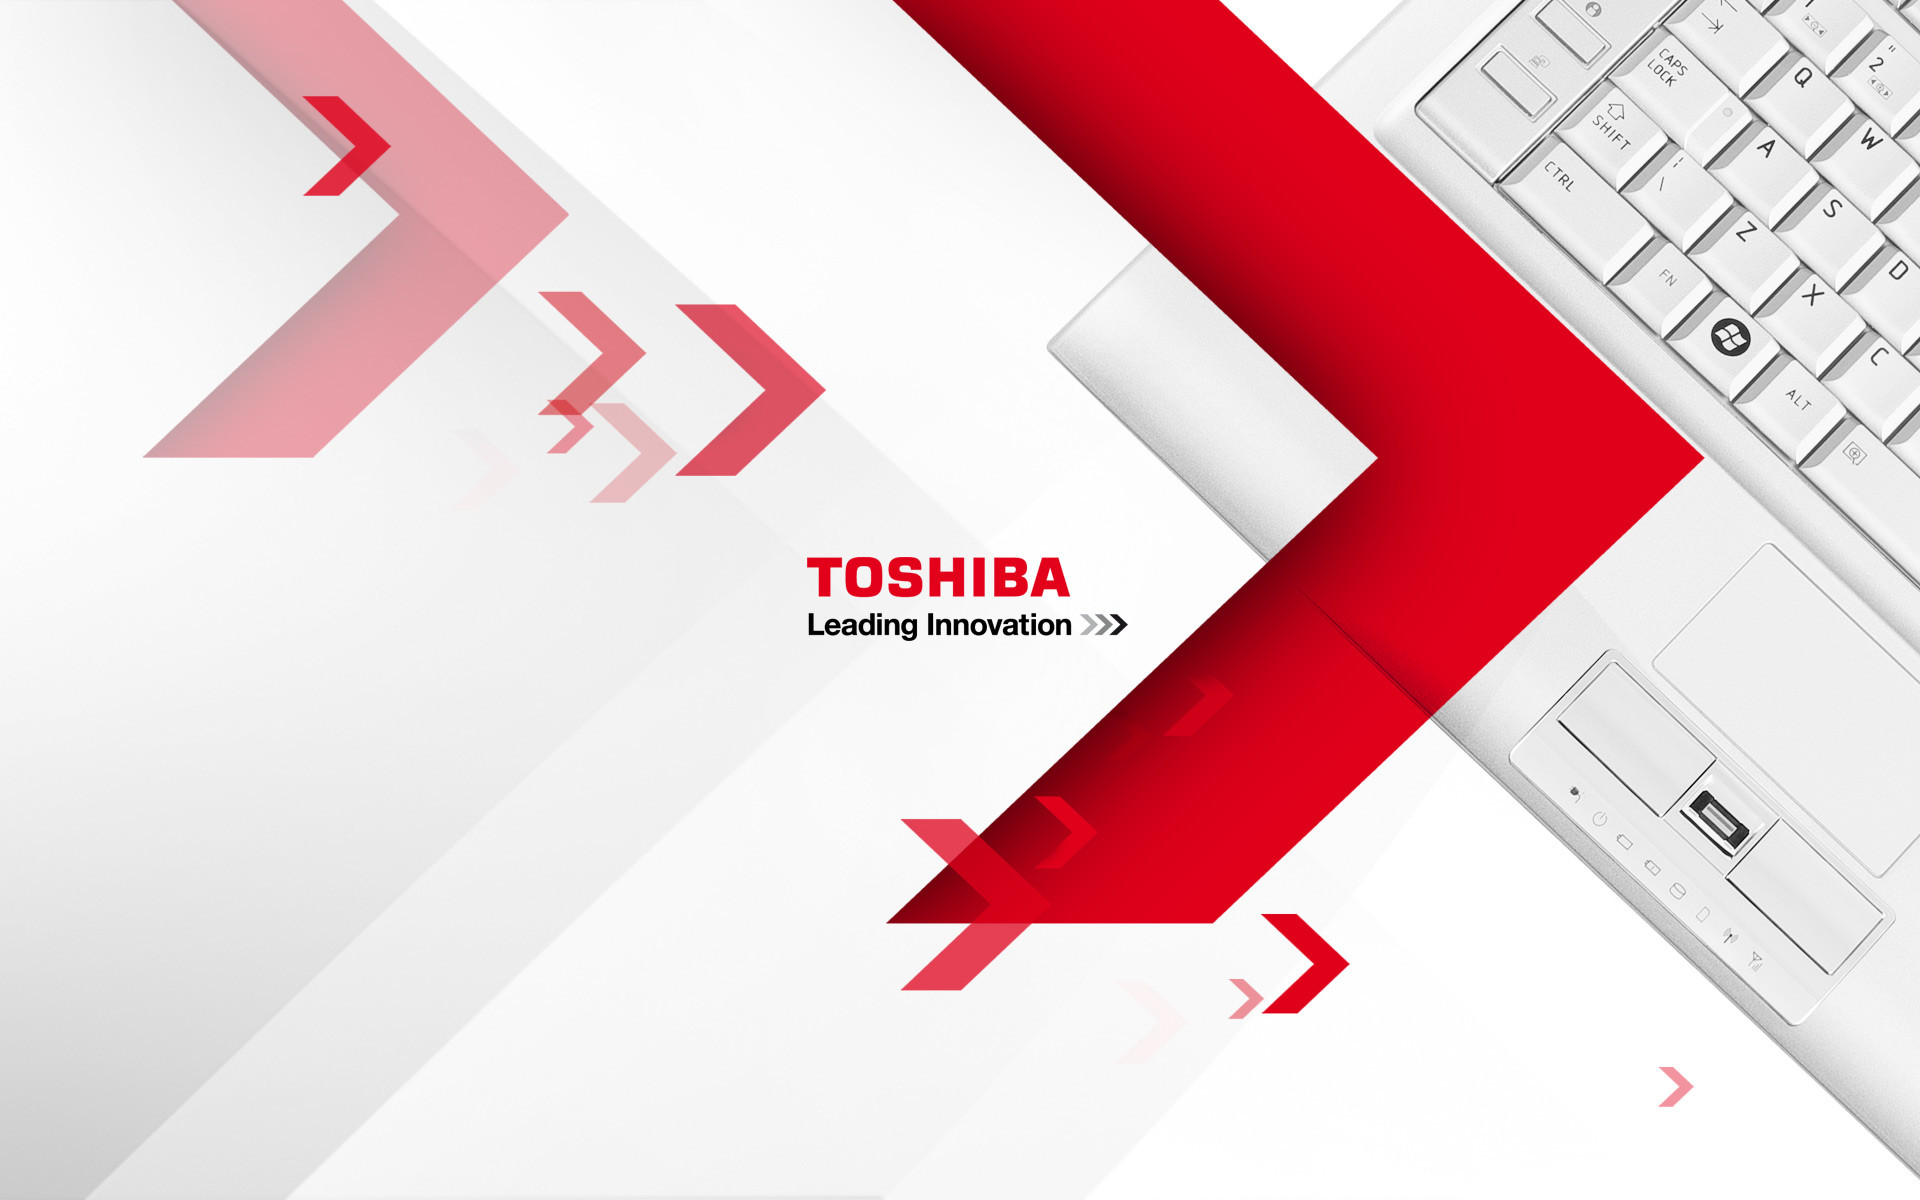 1920x1200 Toshiba Backgrounds Pictures